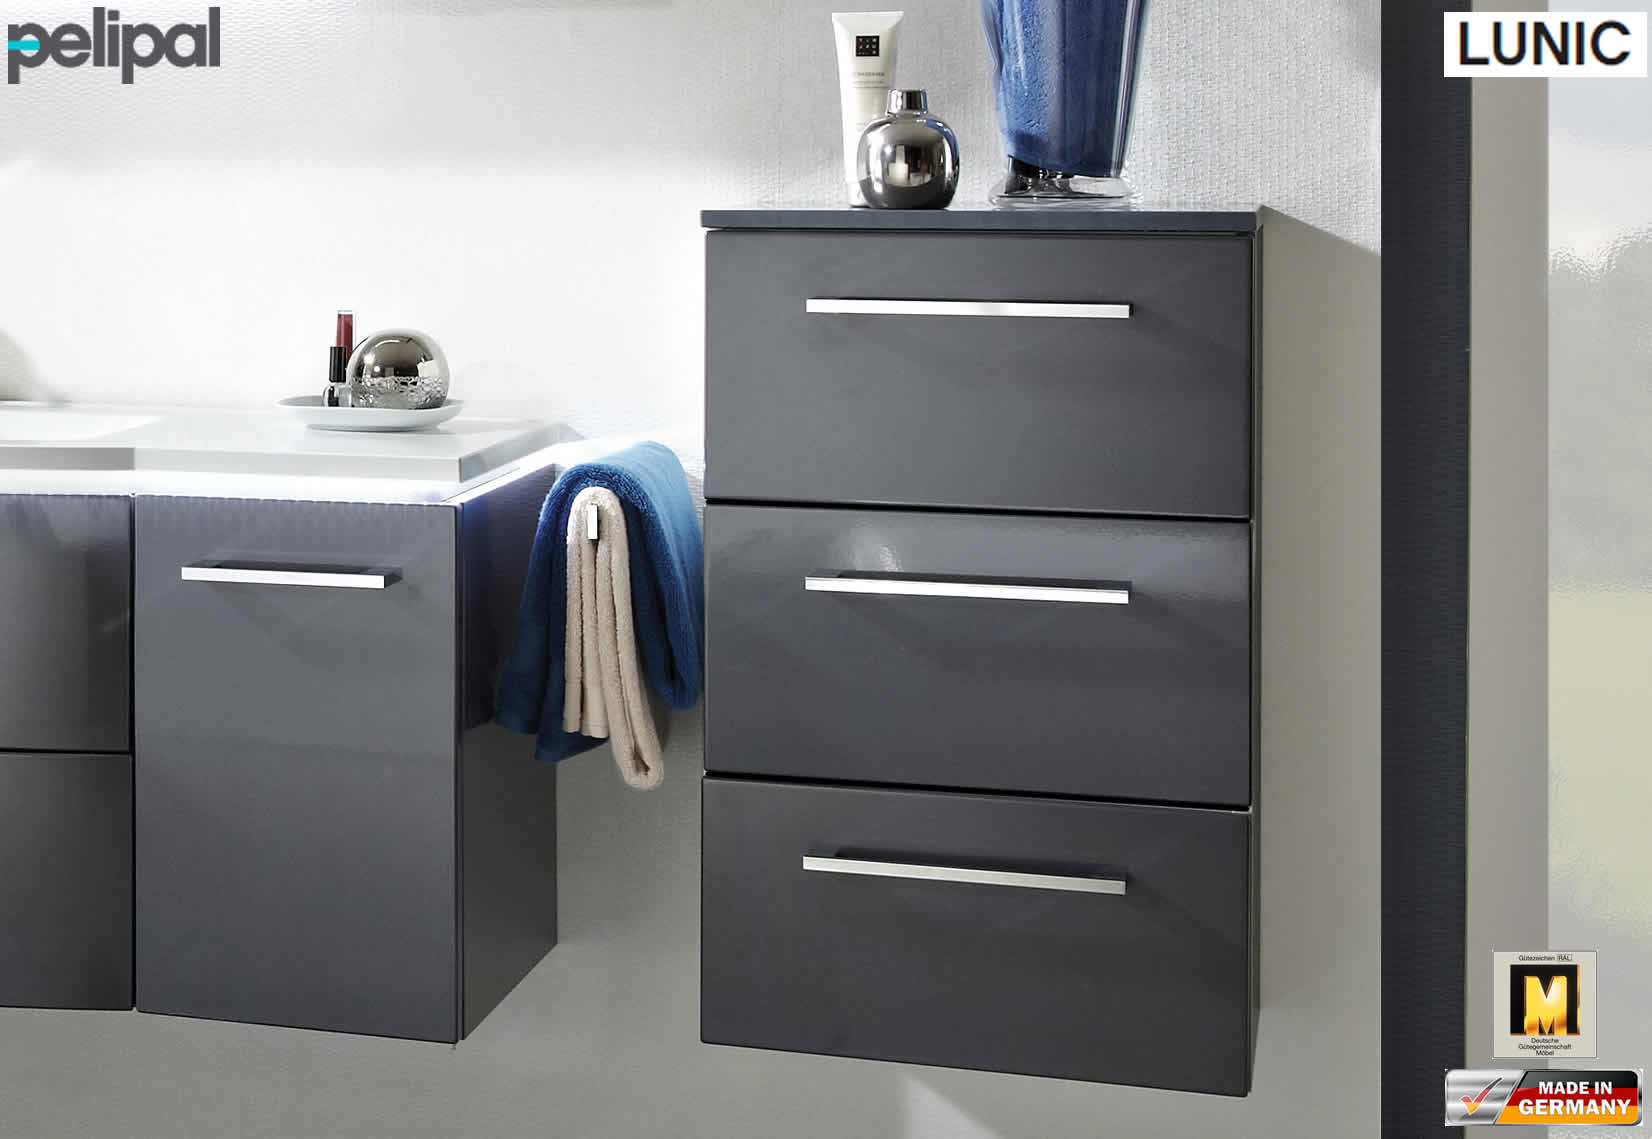 pelipal lunic highboard 45 cm breite 3 ausz ge lu hb 03 impuls home. Black Bedroom Furniture Sets. Home Design Ideas